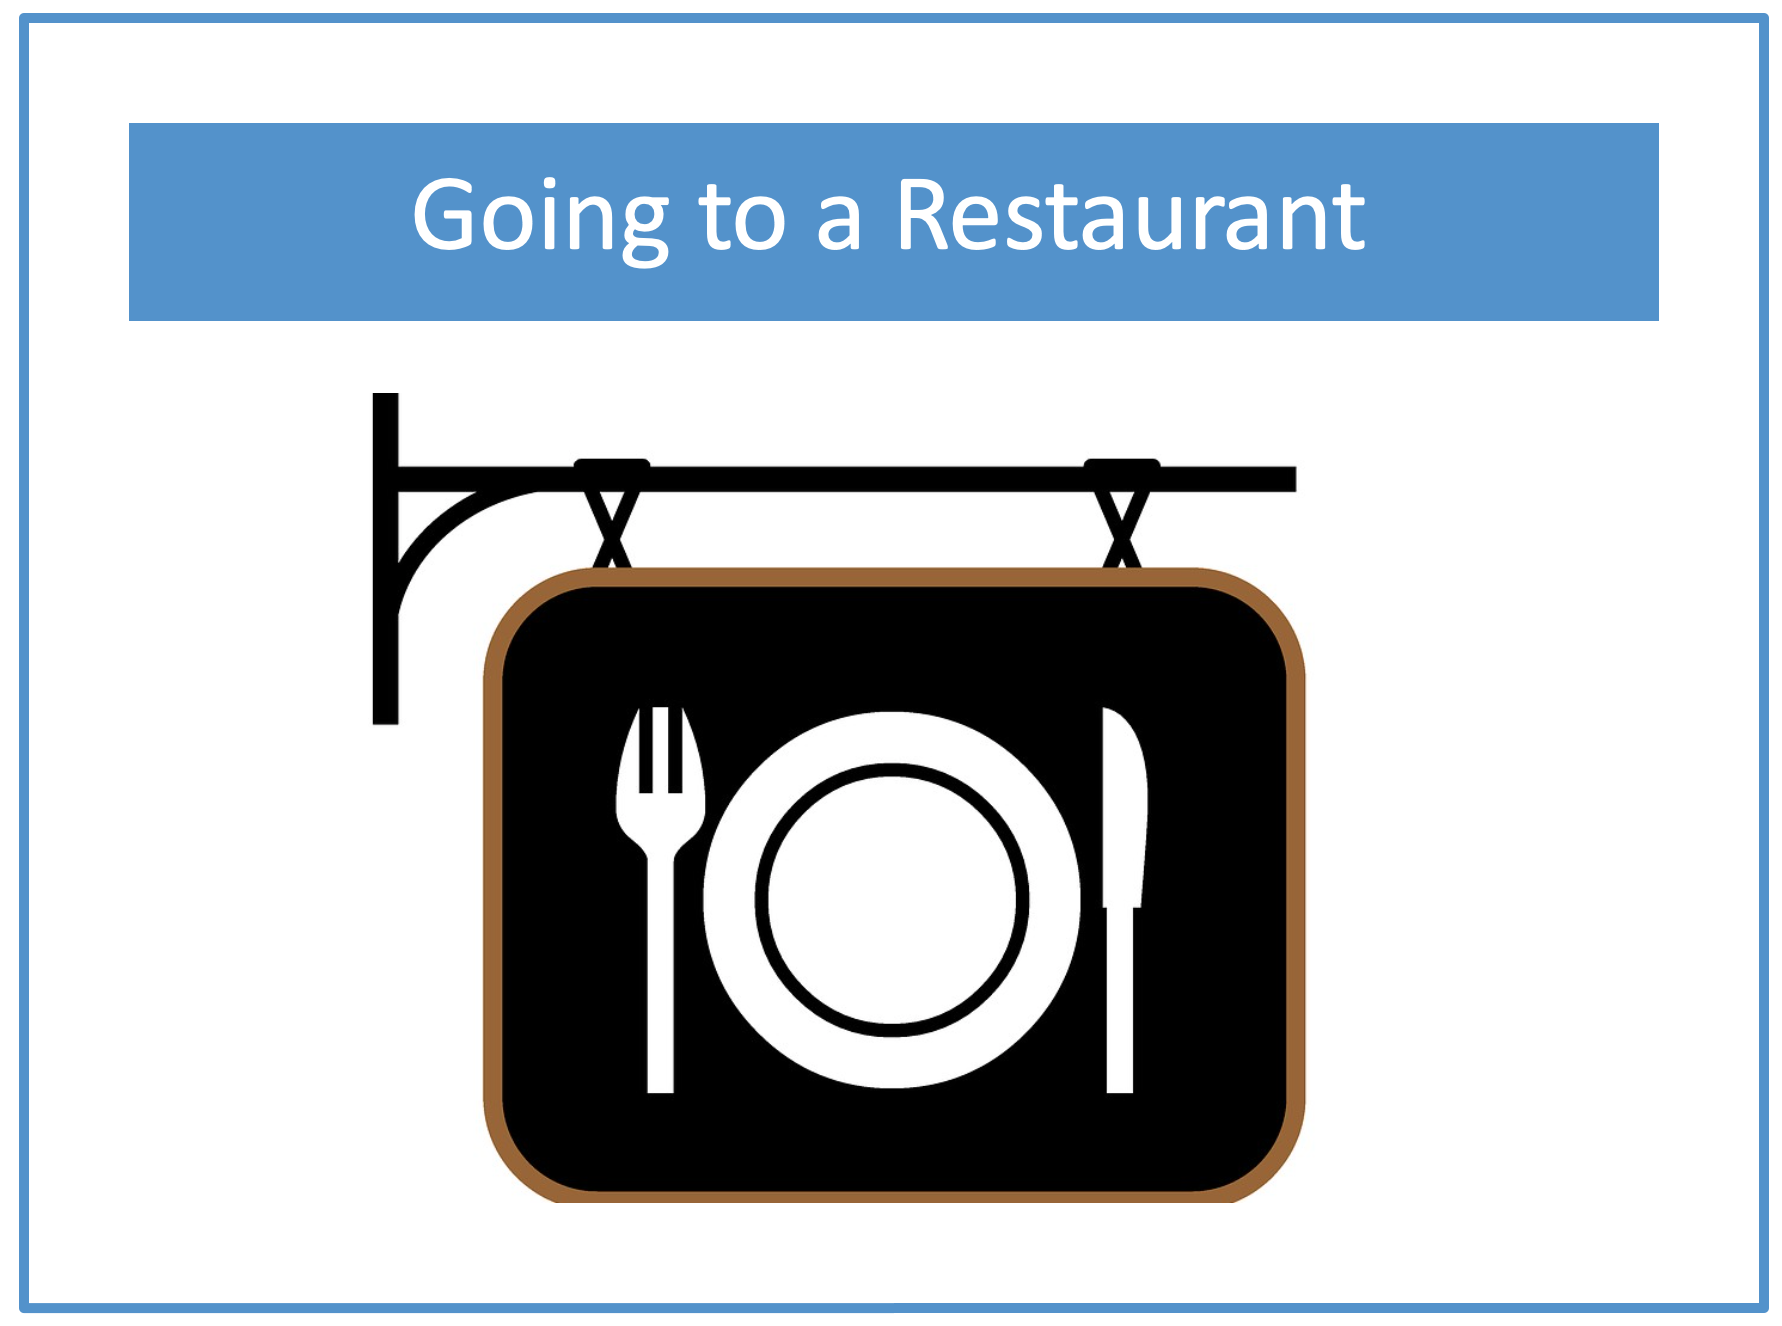 Example of a personalized teaching story for going to a restaurant